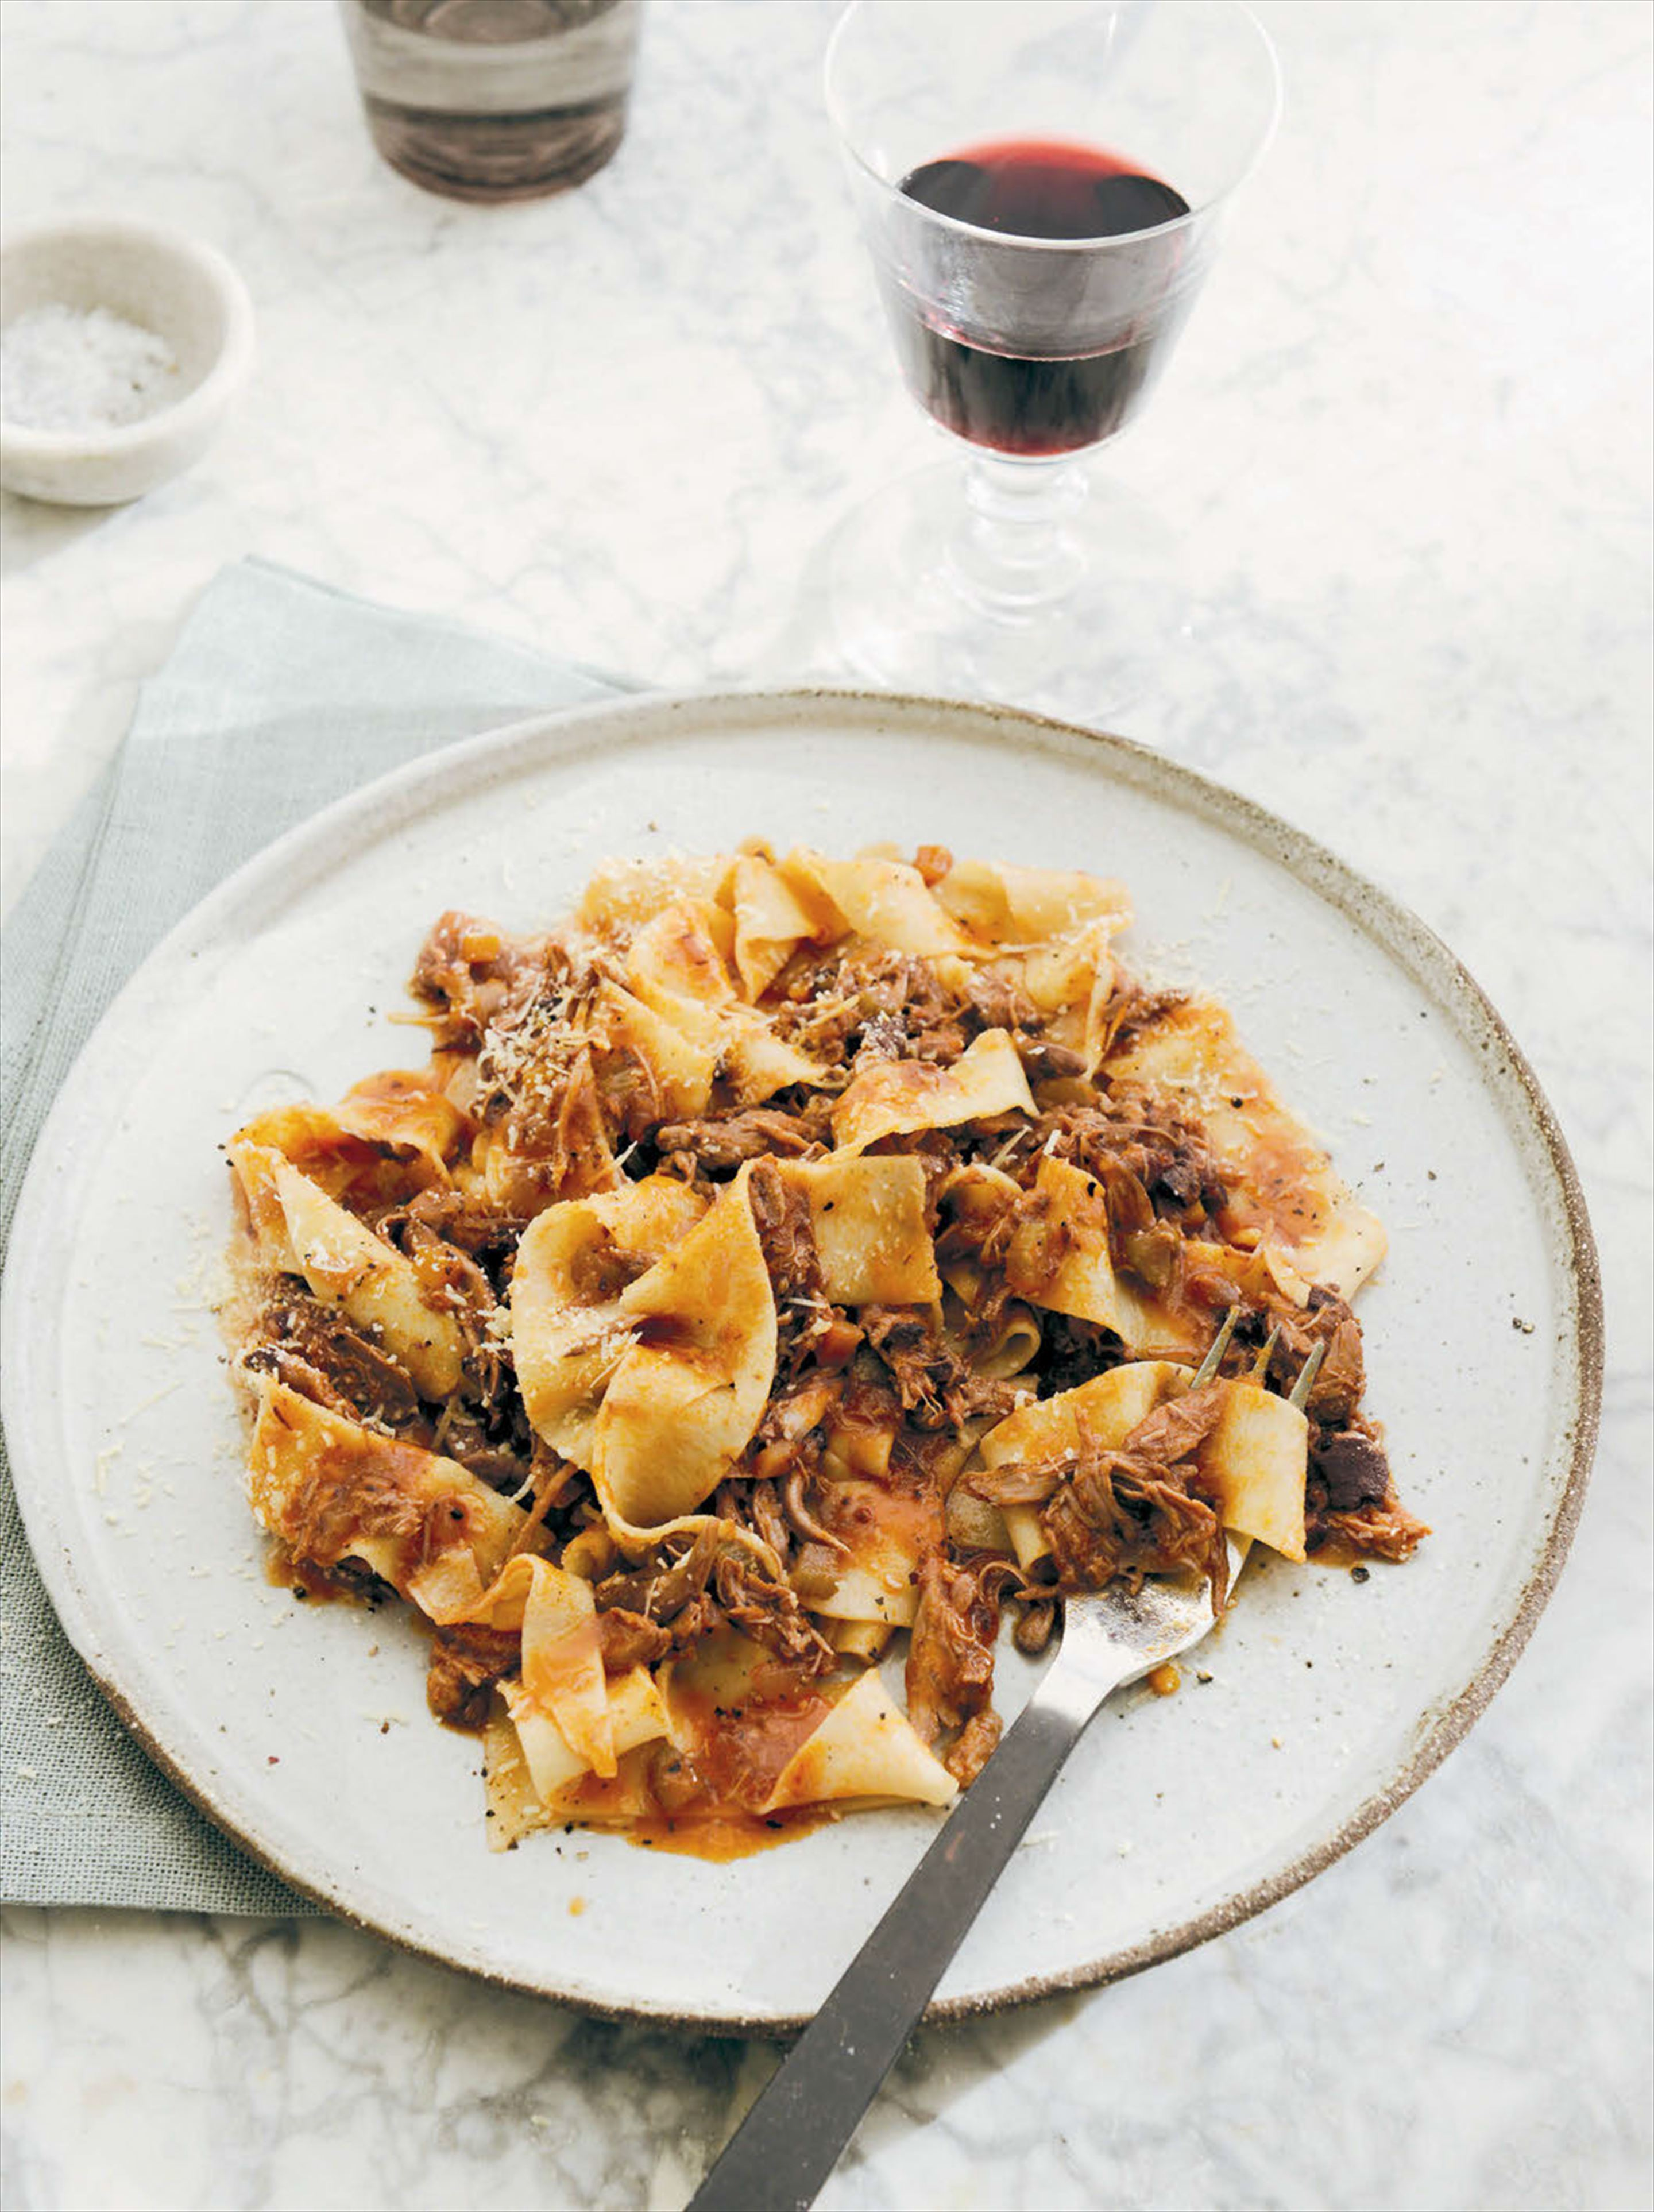 Pappardelle with duck sauce